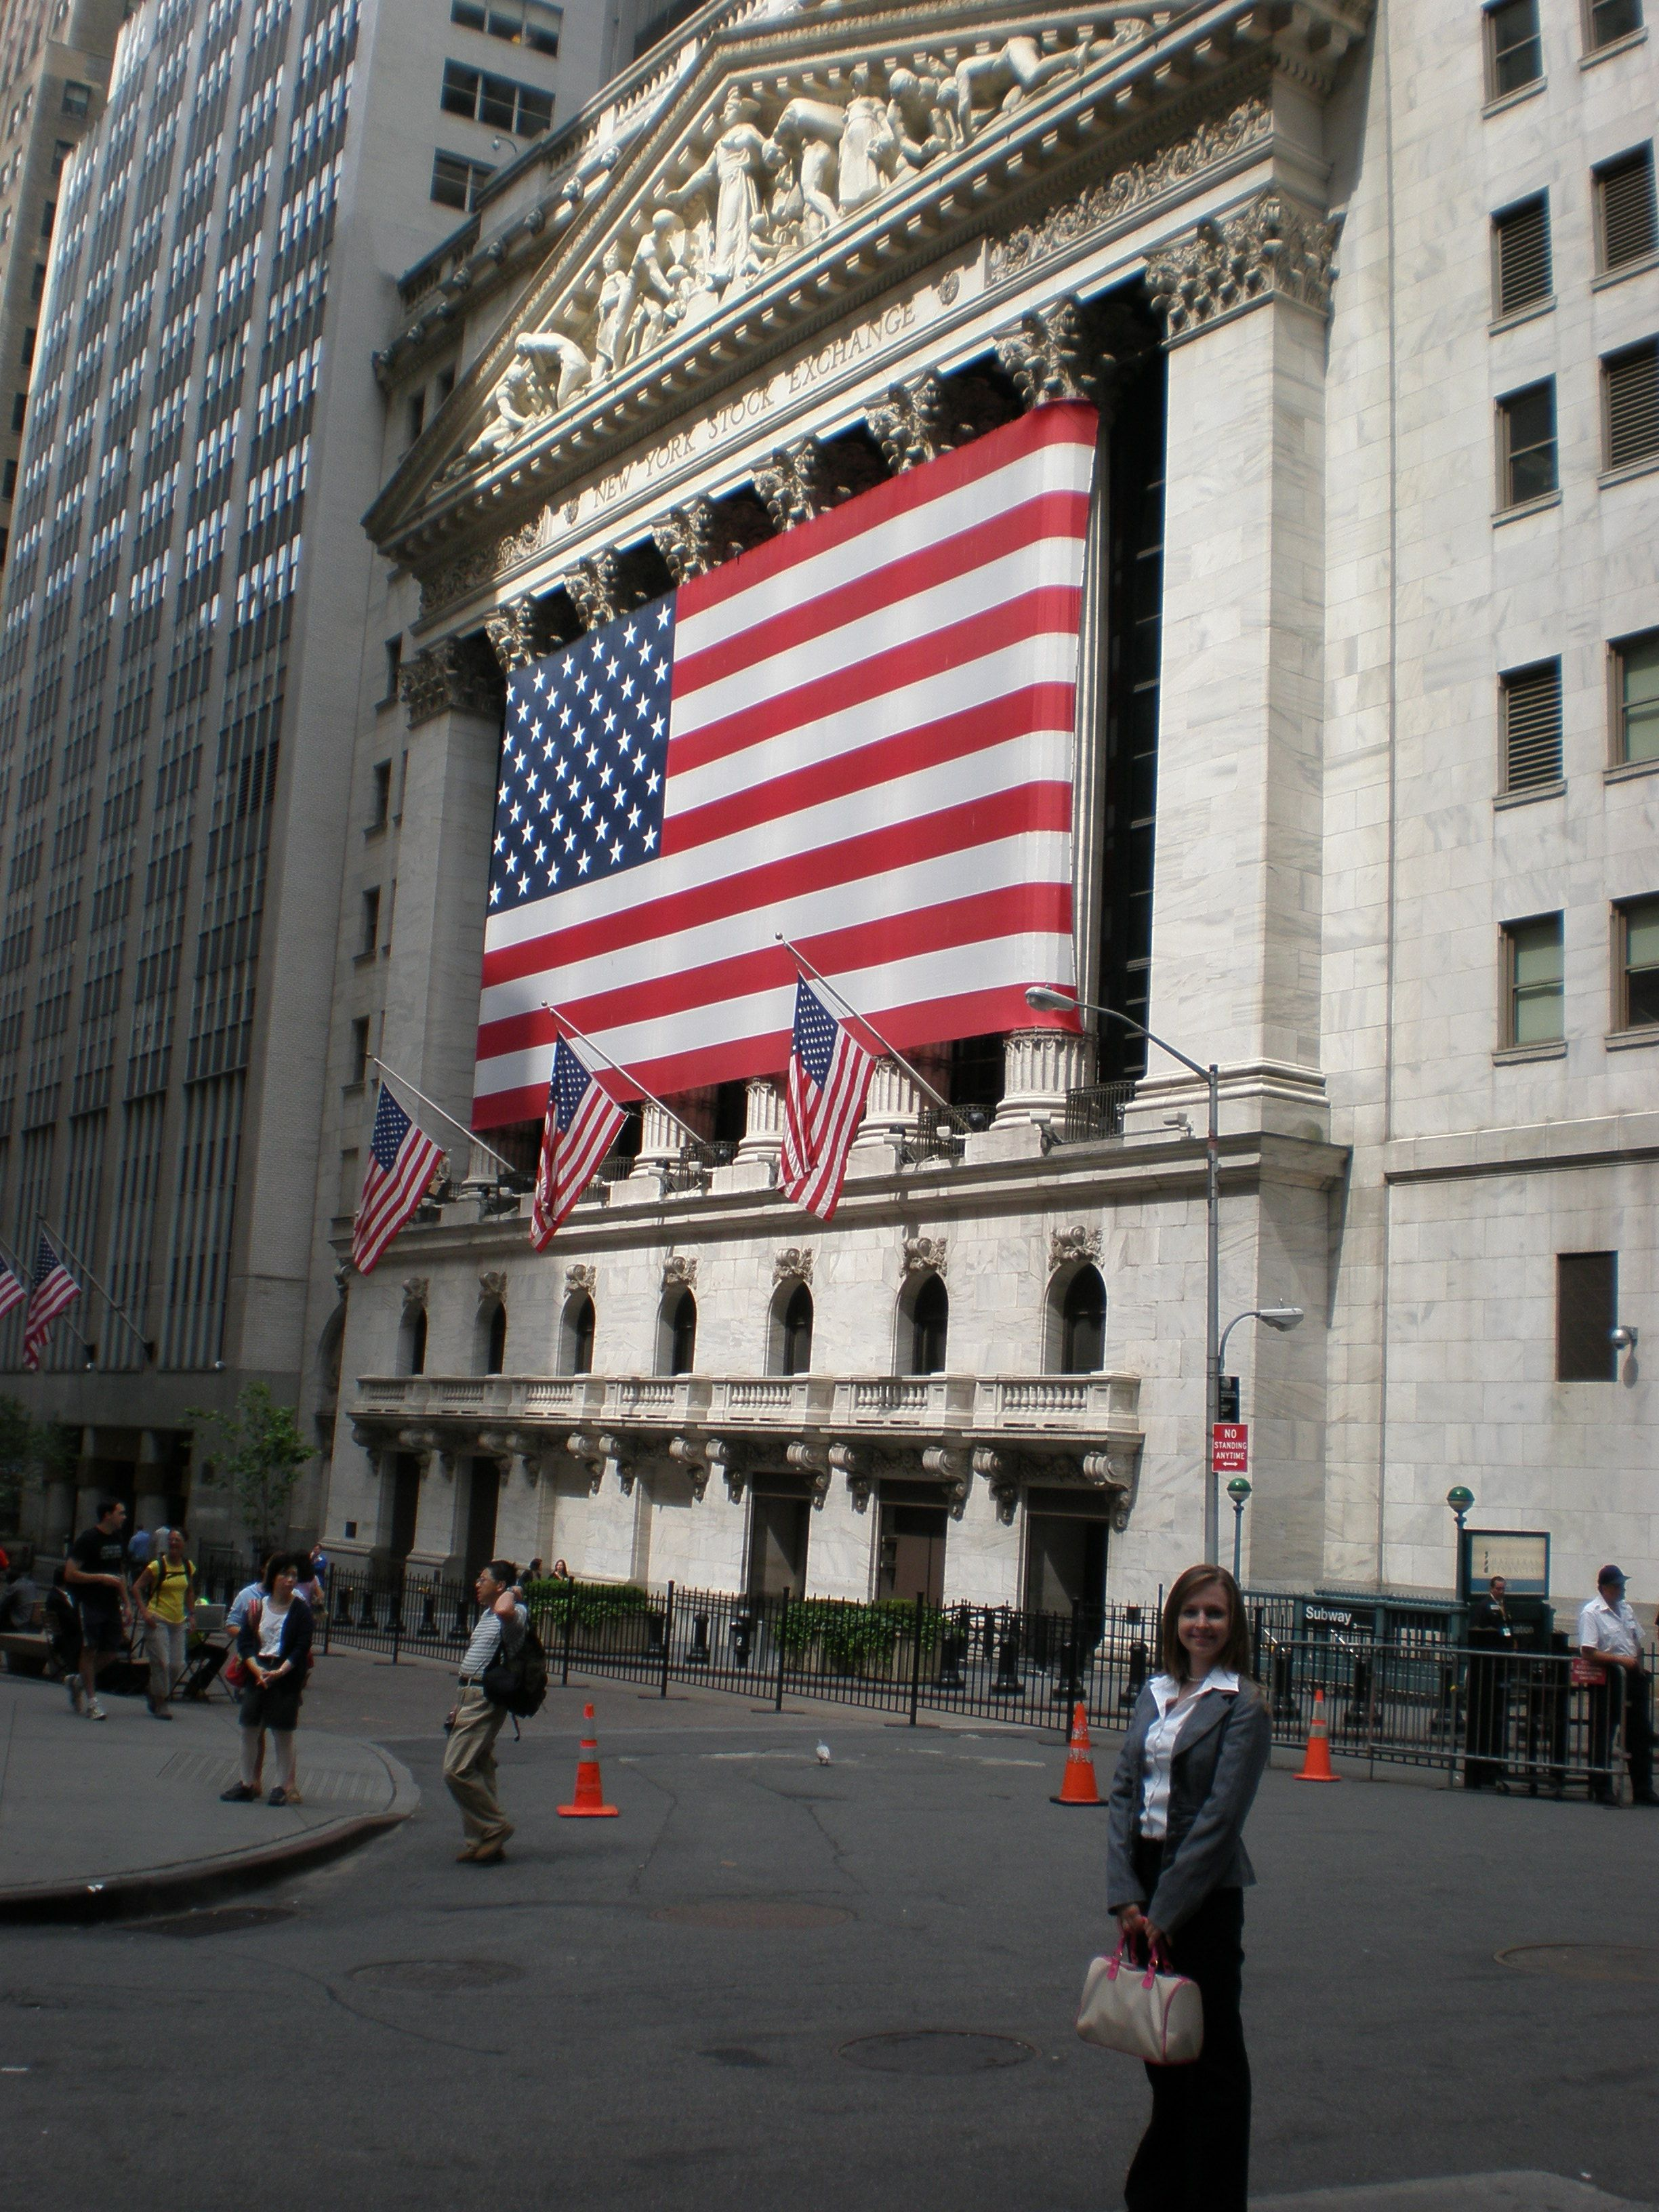 Pin By Robert Silva On Earn Extra Money Wall Street News Visiting Nyc Wall Street Nyc